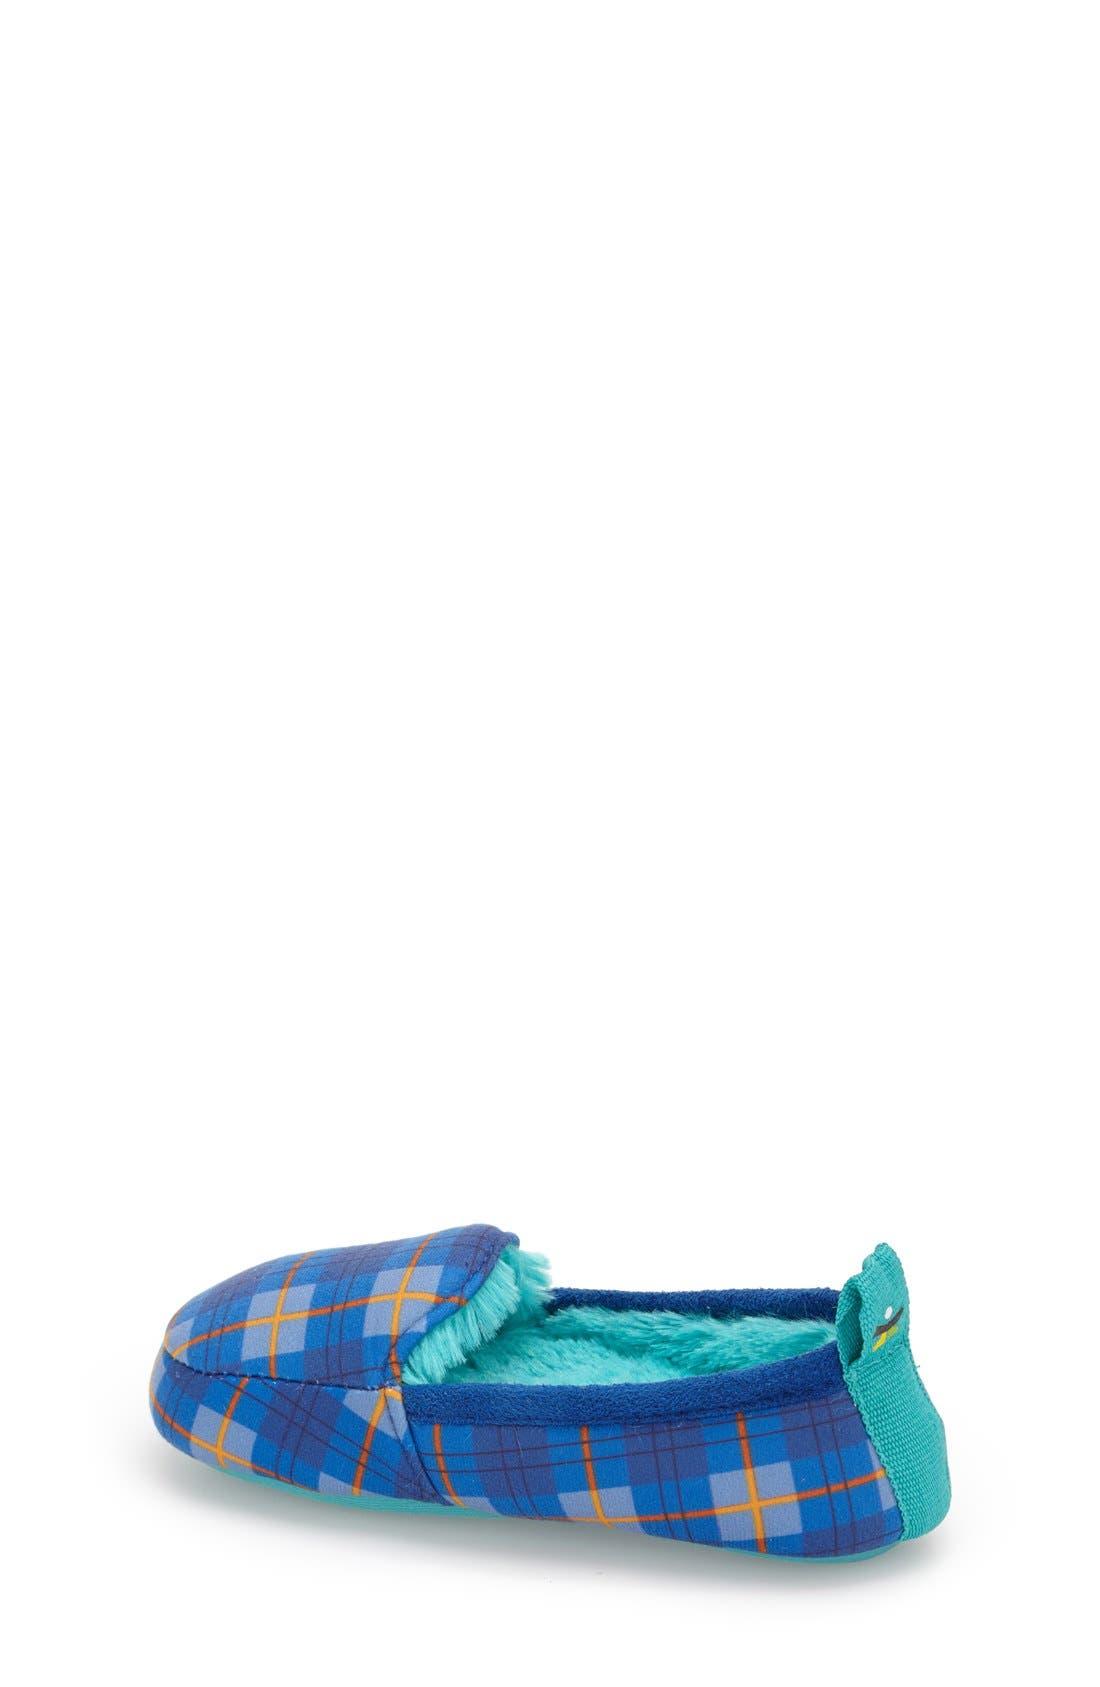 'Slumber' Slippers,                             Alternate thumbnail 60, color,